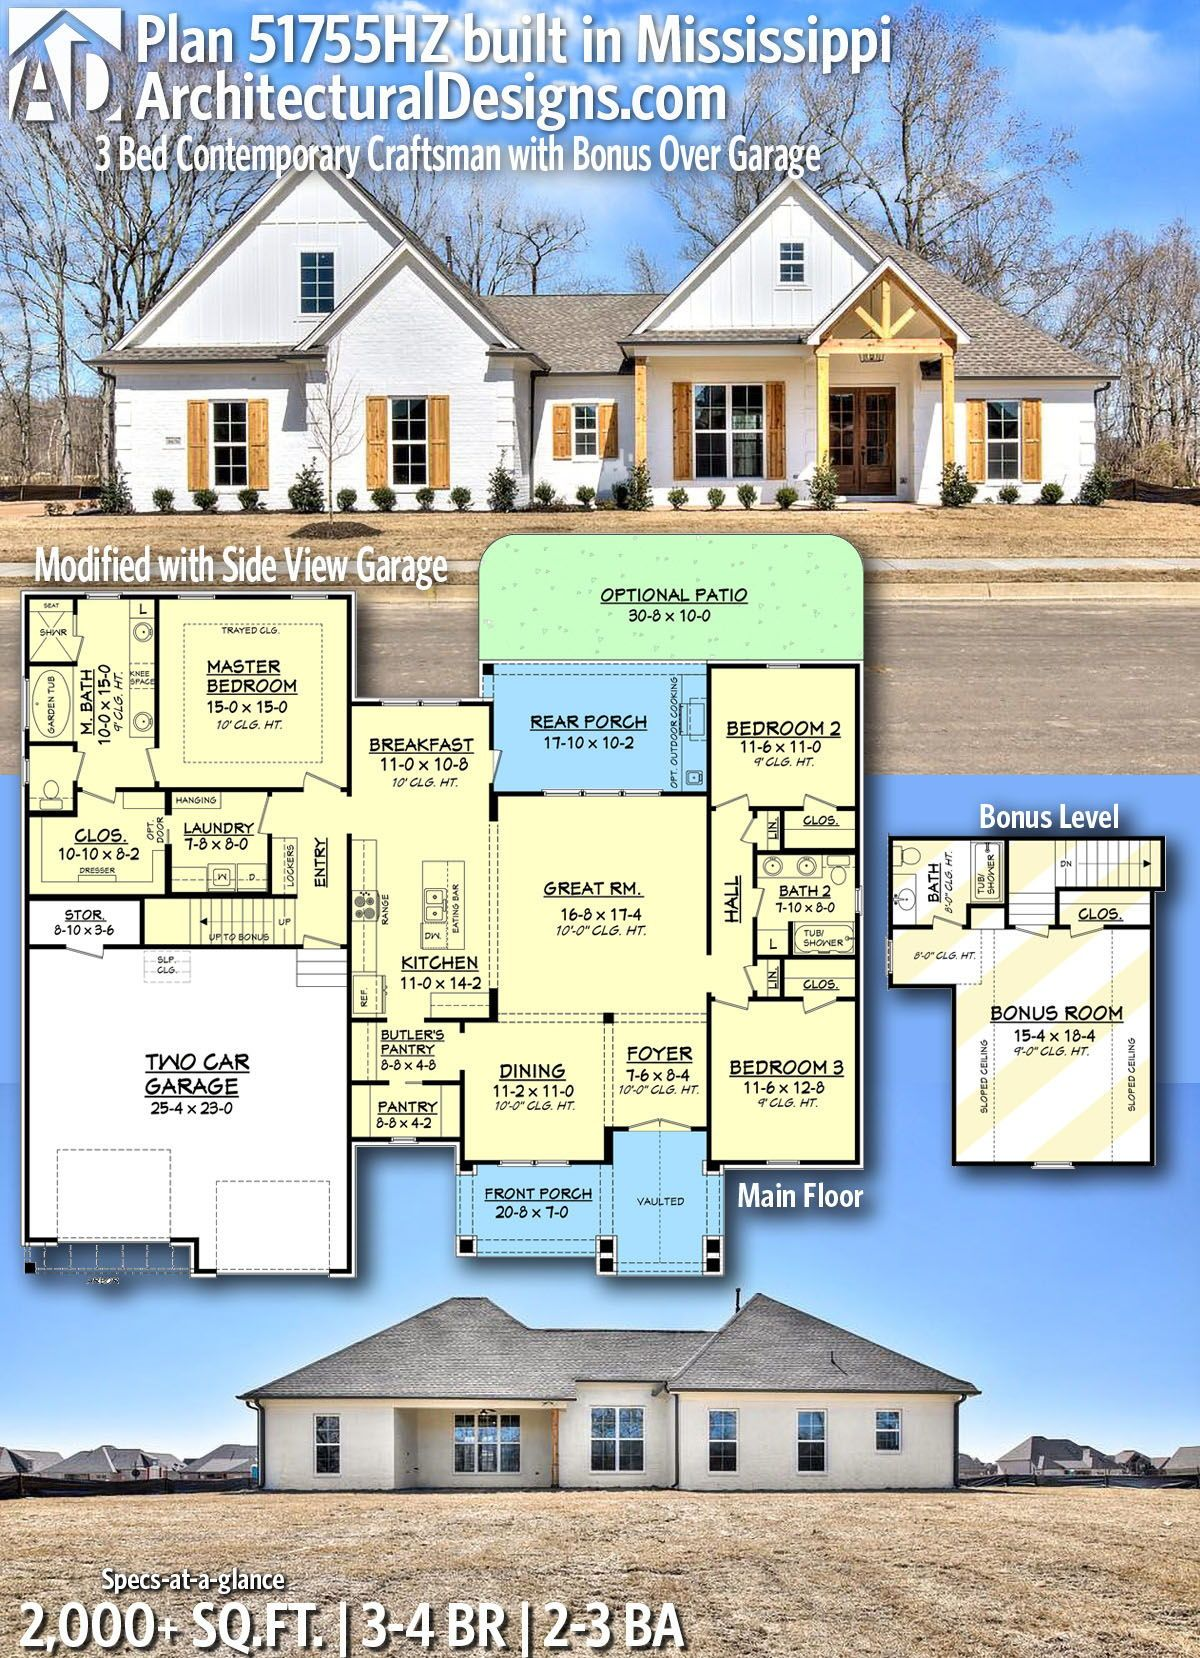 Plan 51755hz 3 Bed Contemporary Craftsman With Bonus Over Garage In 2021 Craftsman House New House Plans Craftsman House Plan